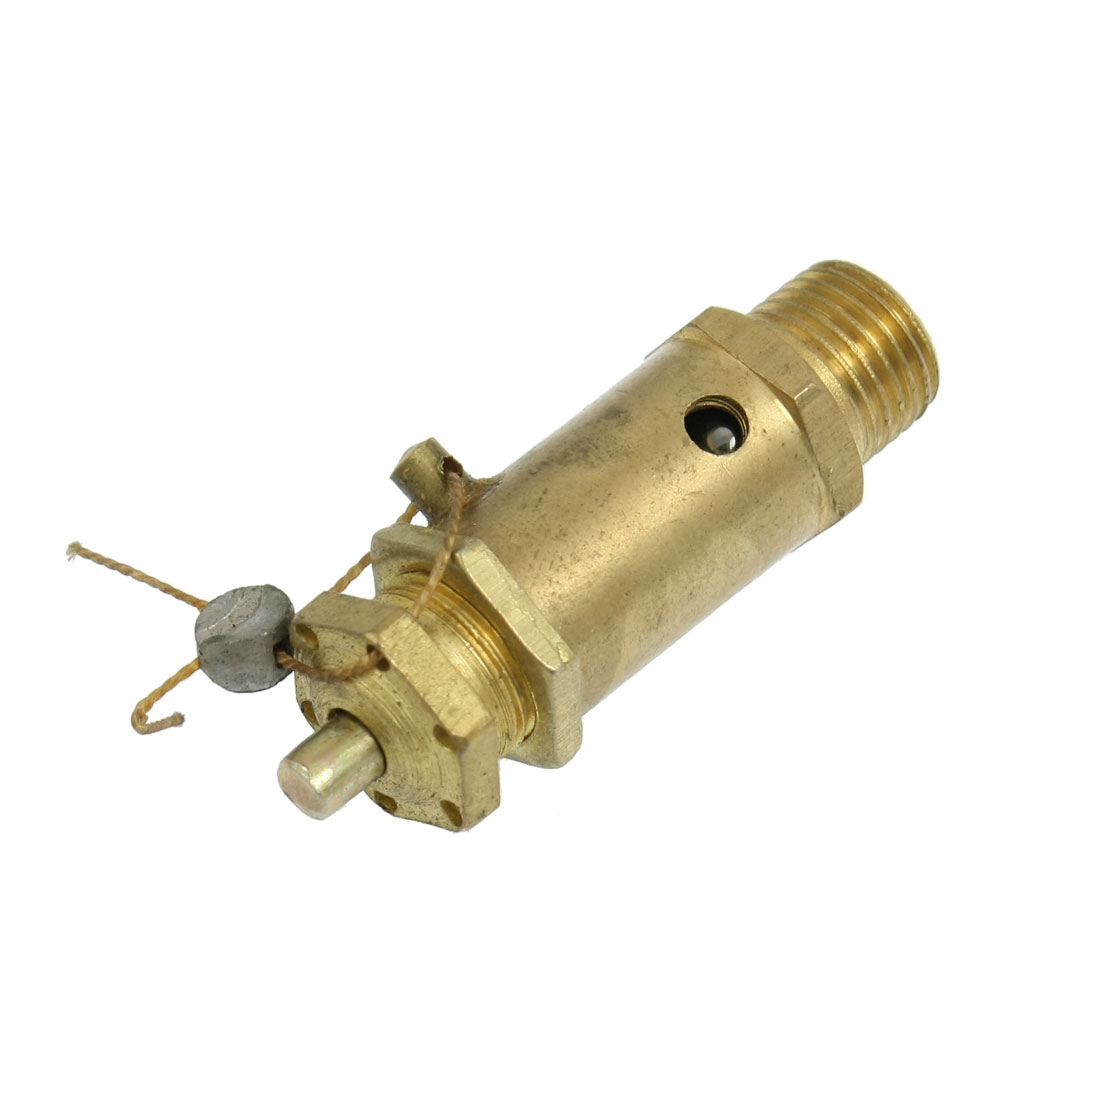 "Brass 1/2"" Male Thread Air Compressor Safety Pressure Relief Valve 10Mpa"